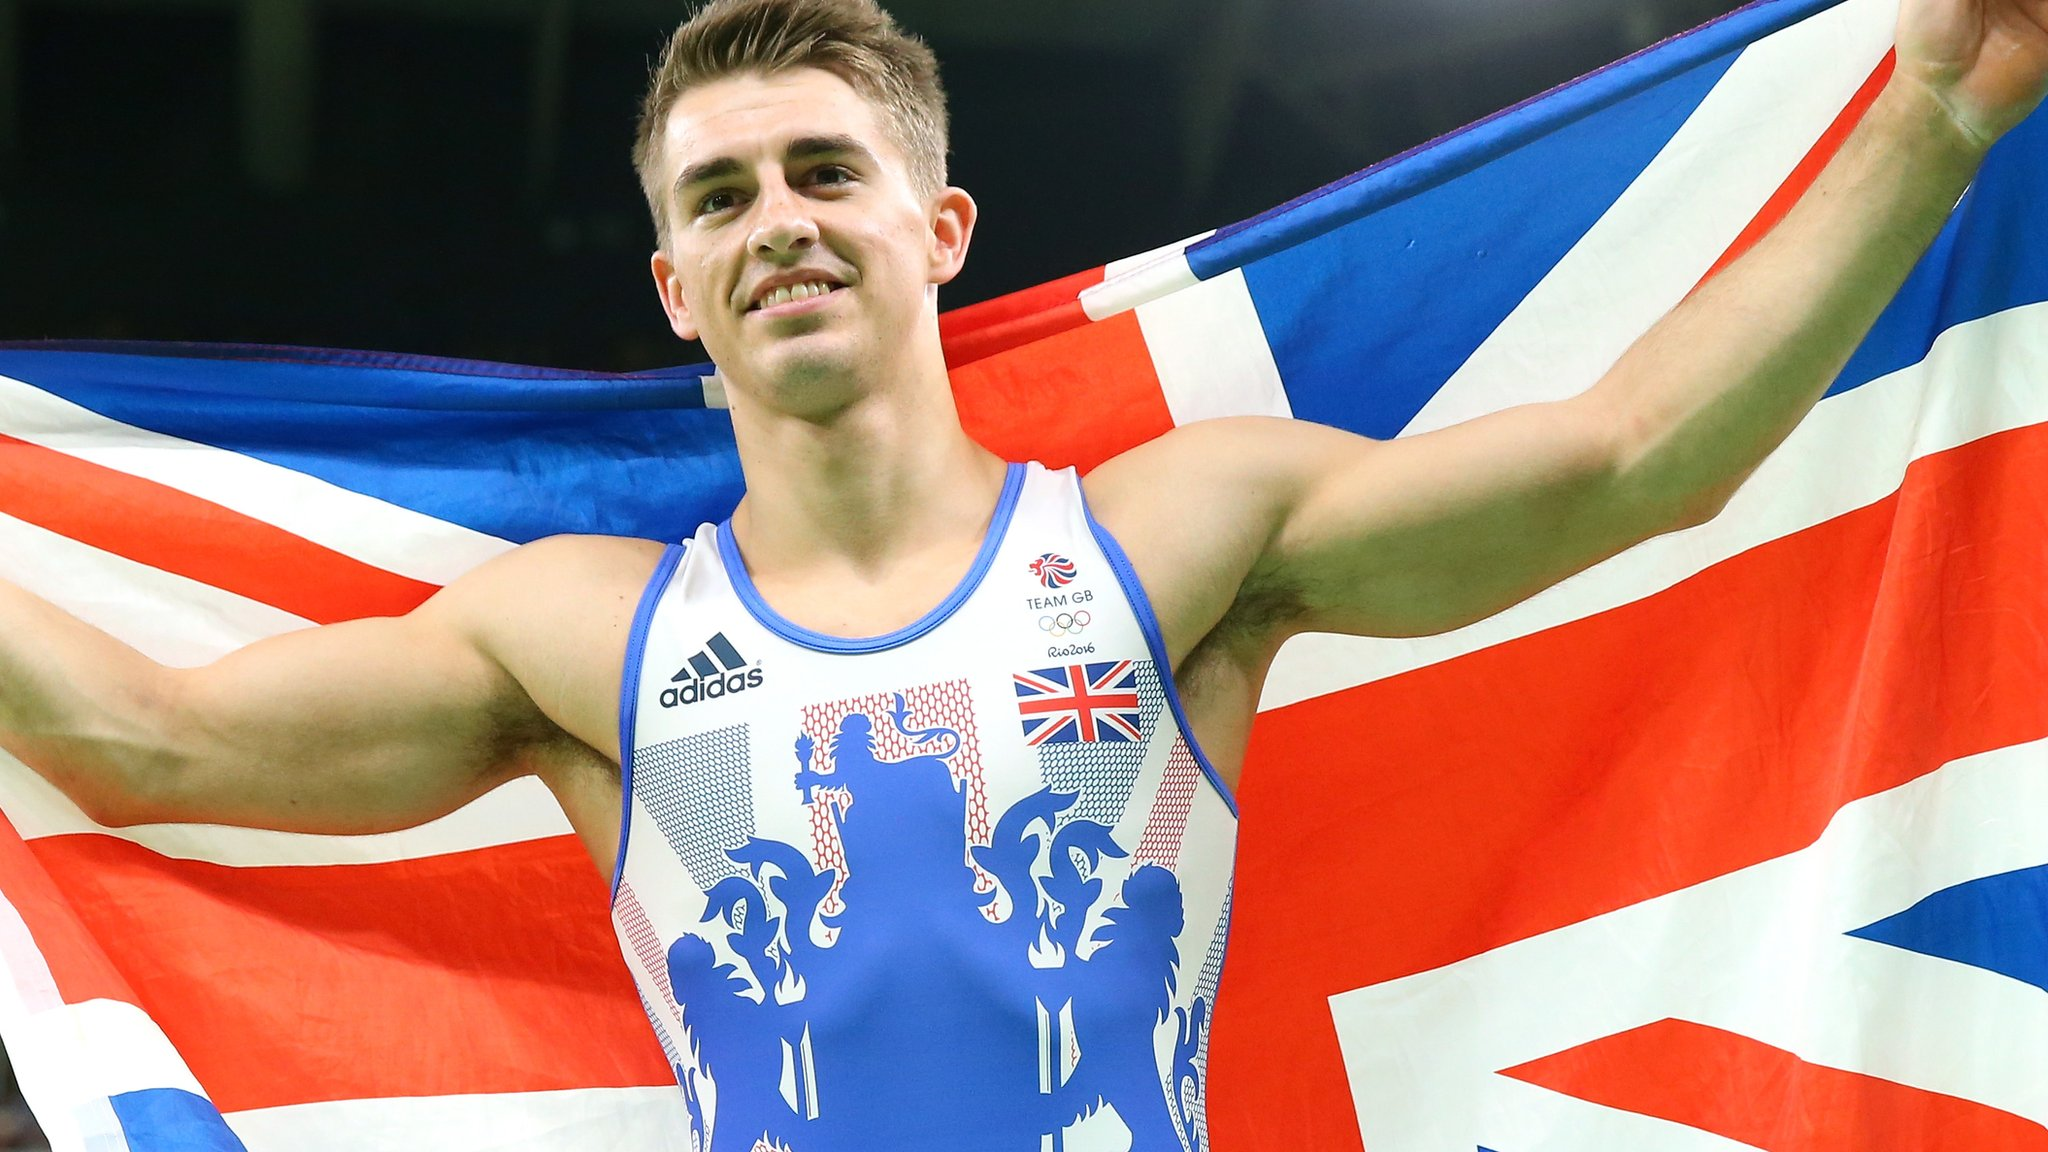 Gymnastics World Cup moves to London from Glasgow